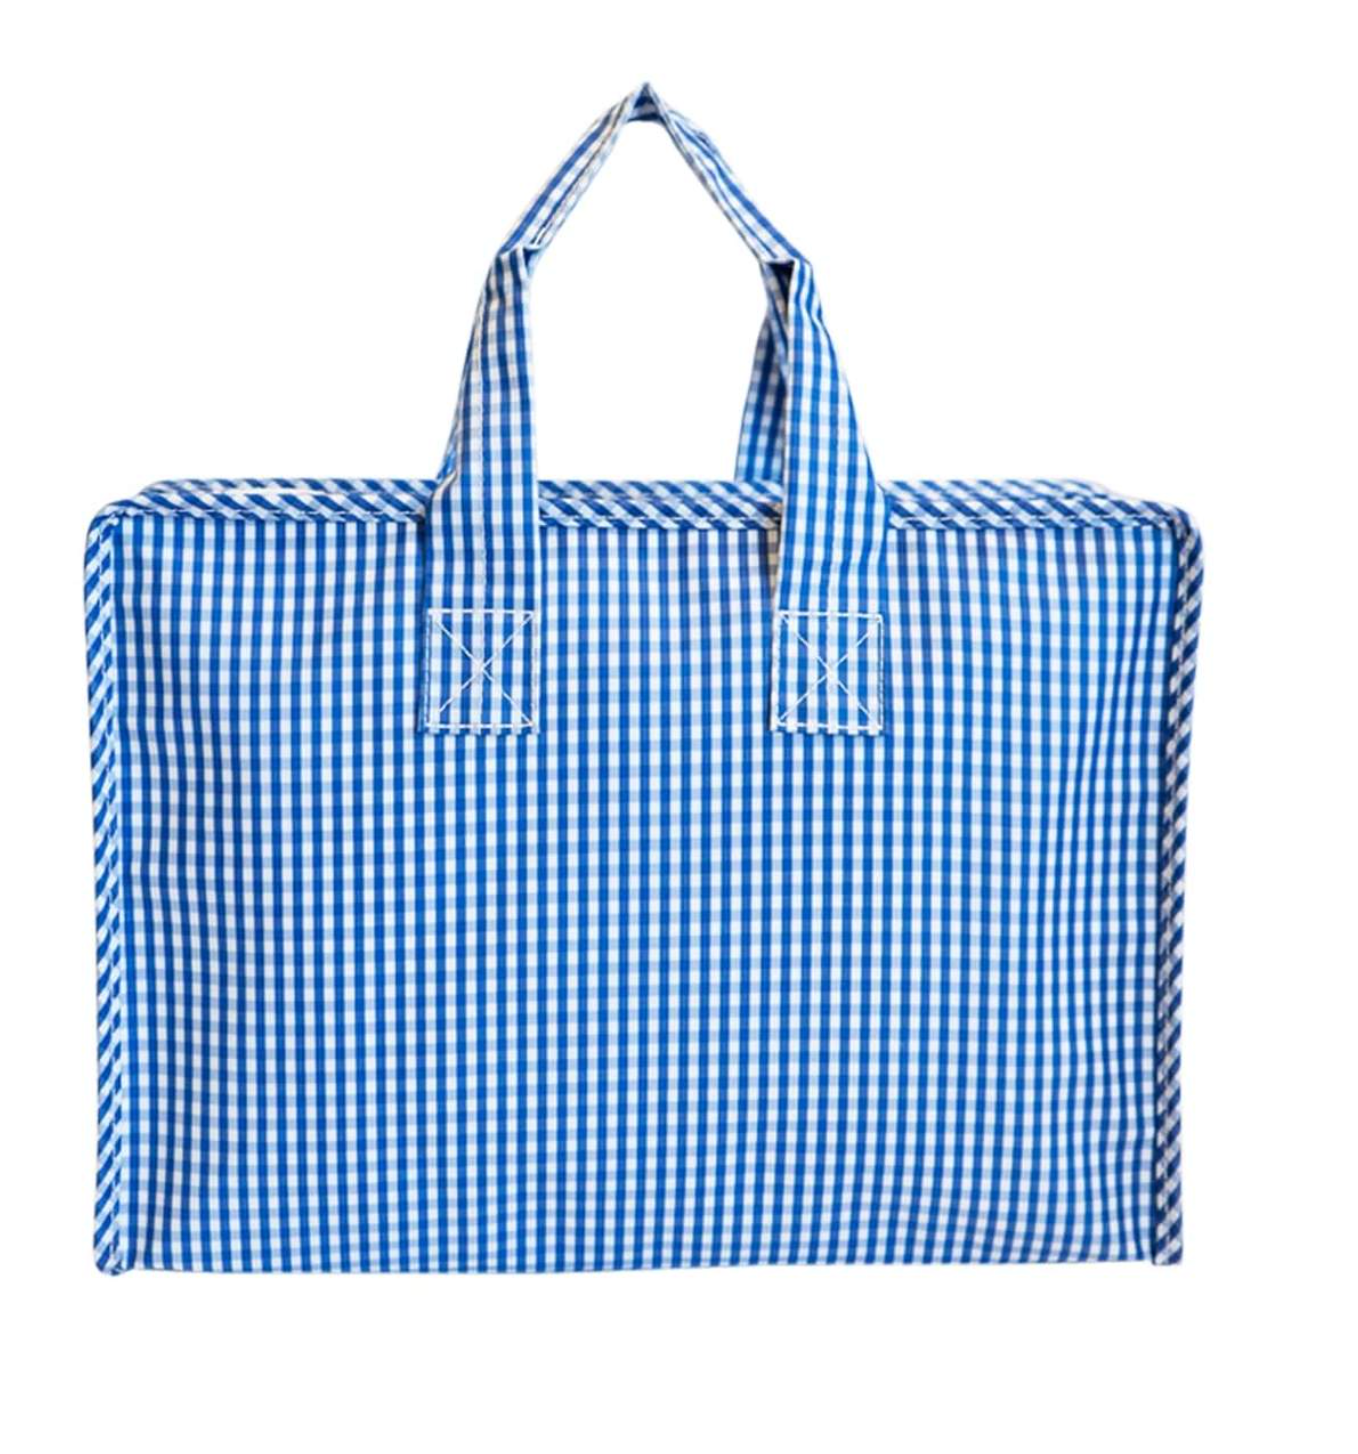 Gingham Travel Tote (Two colors)